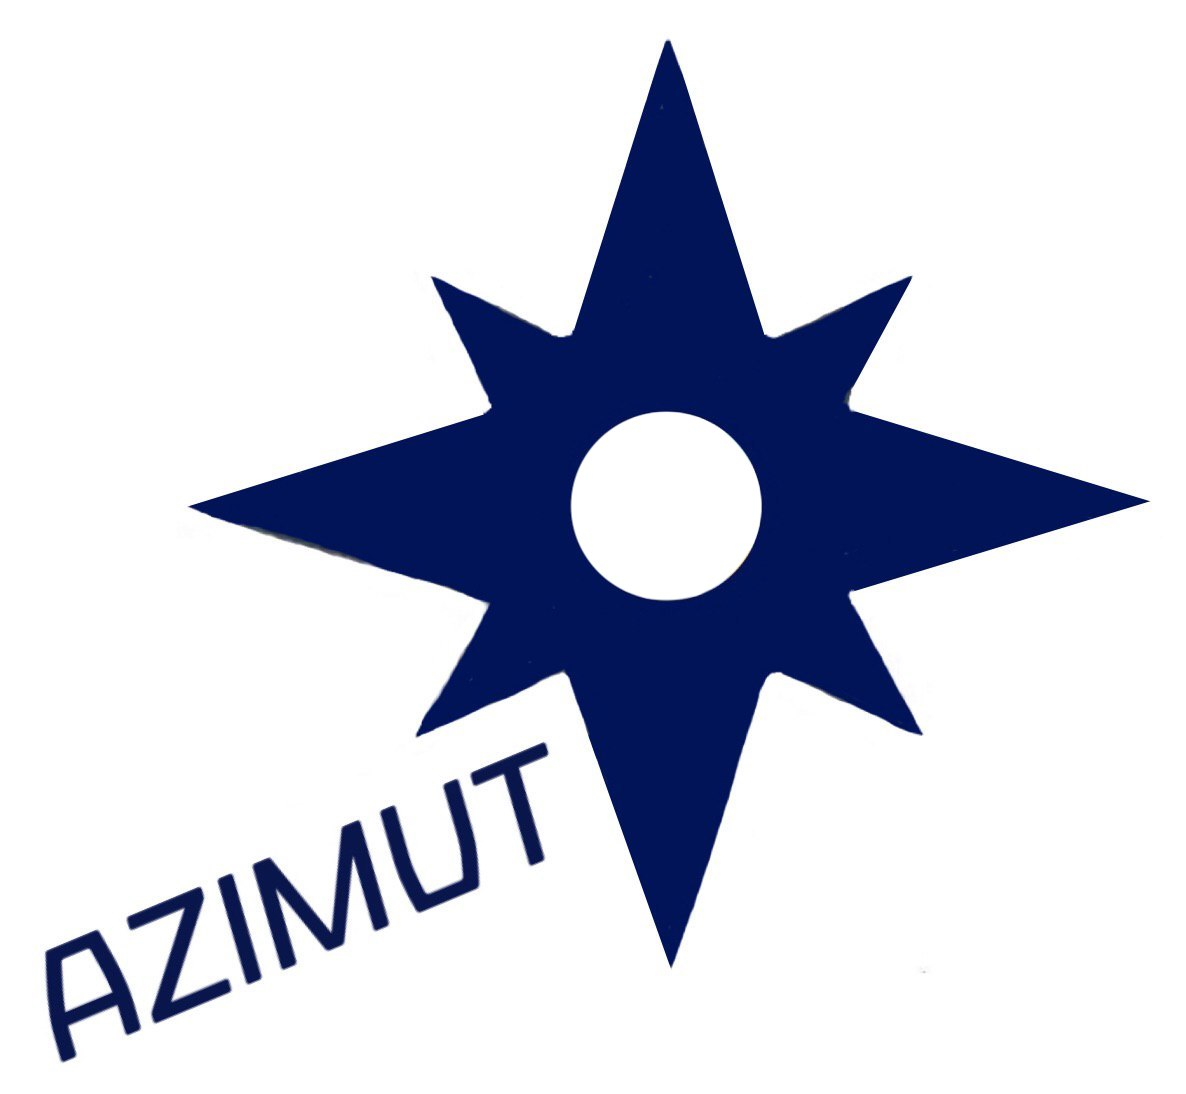 Azimut Project